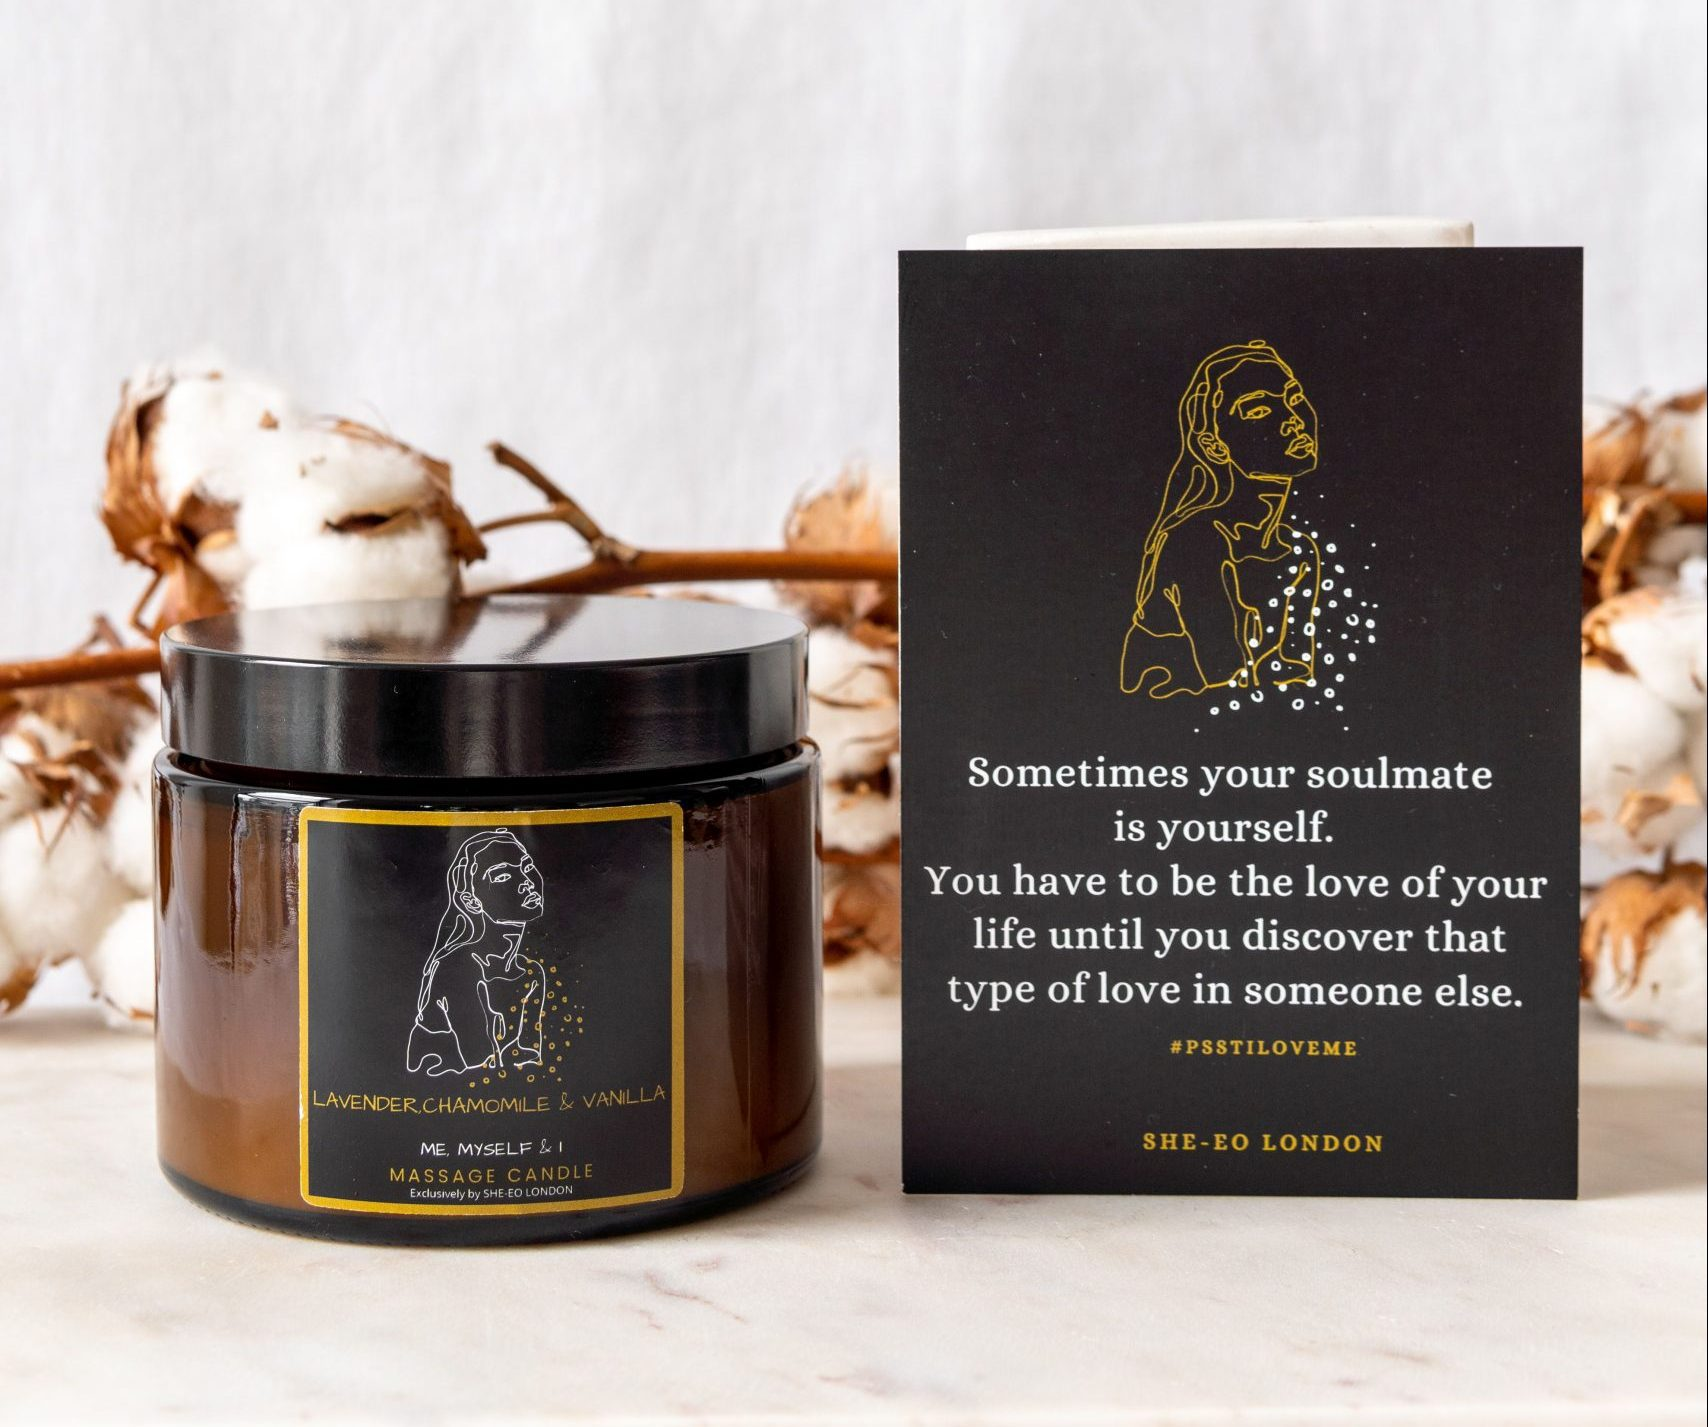 massage candle for valentines day, gifts for her, valentines gifts, black-owned business